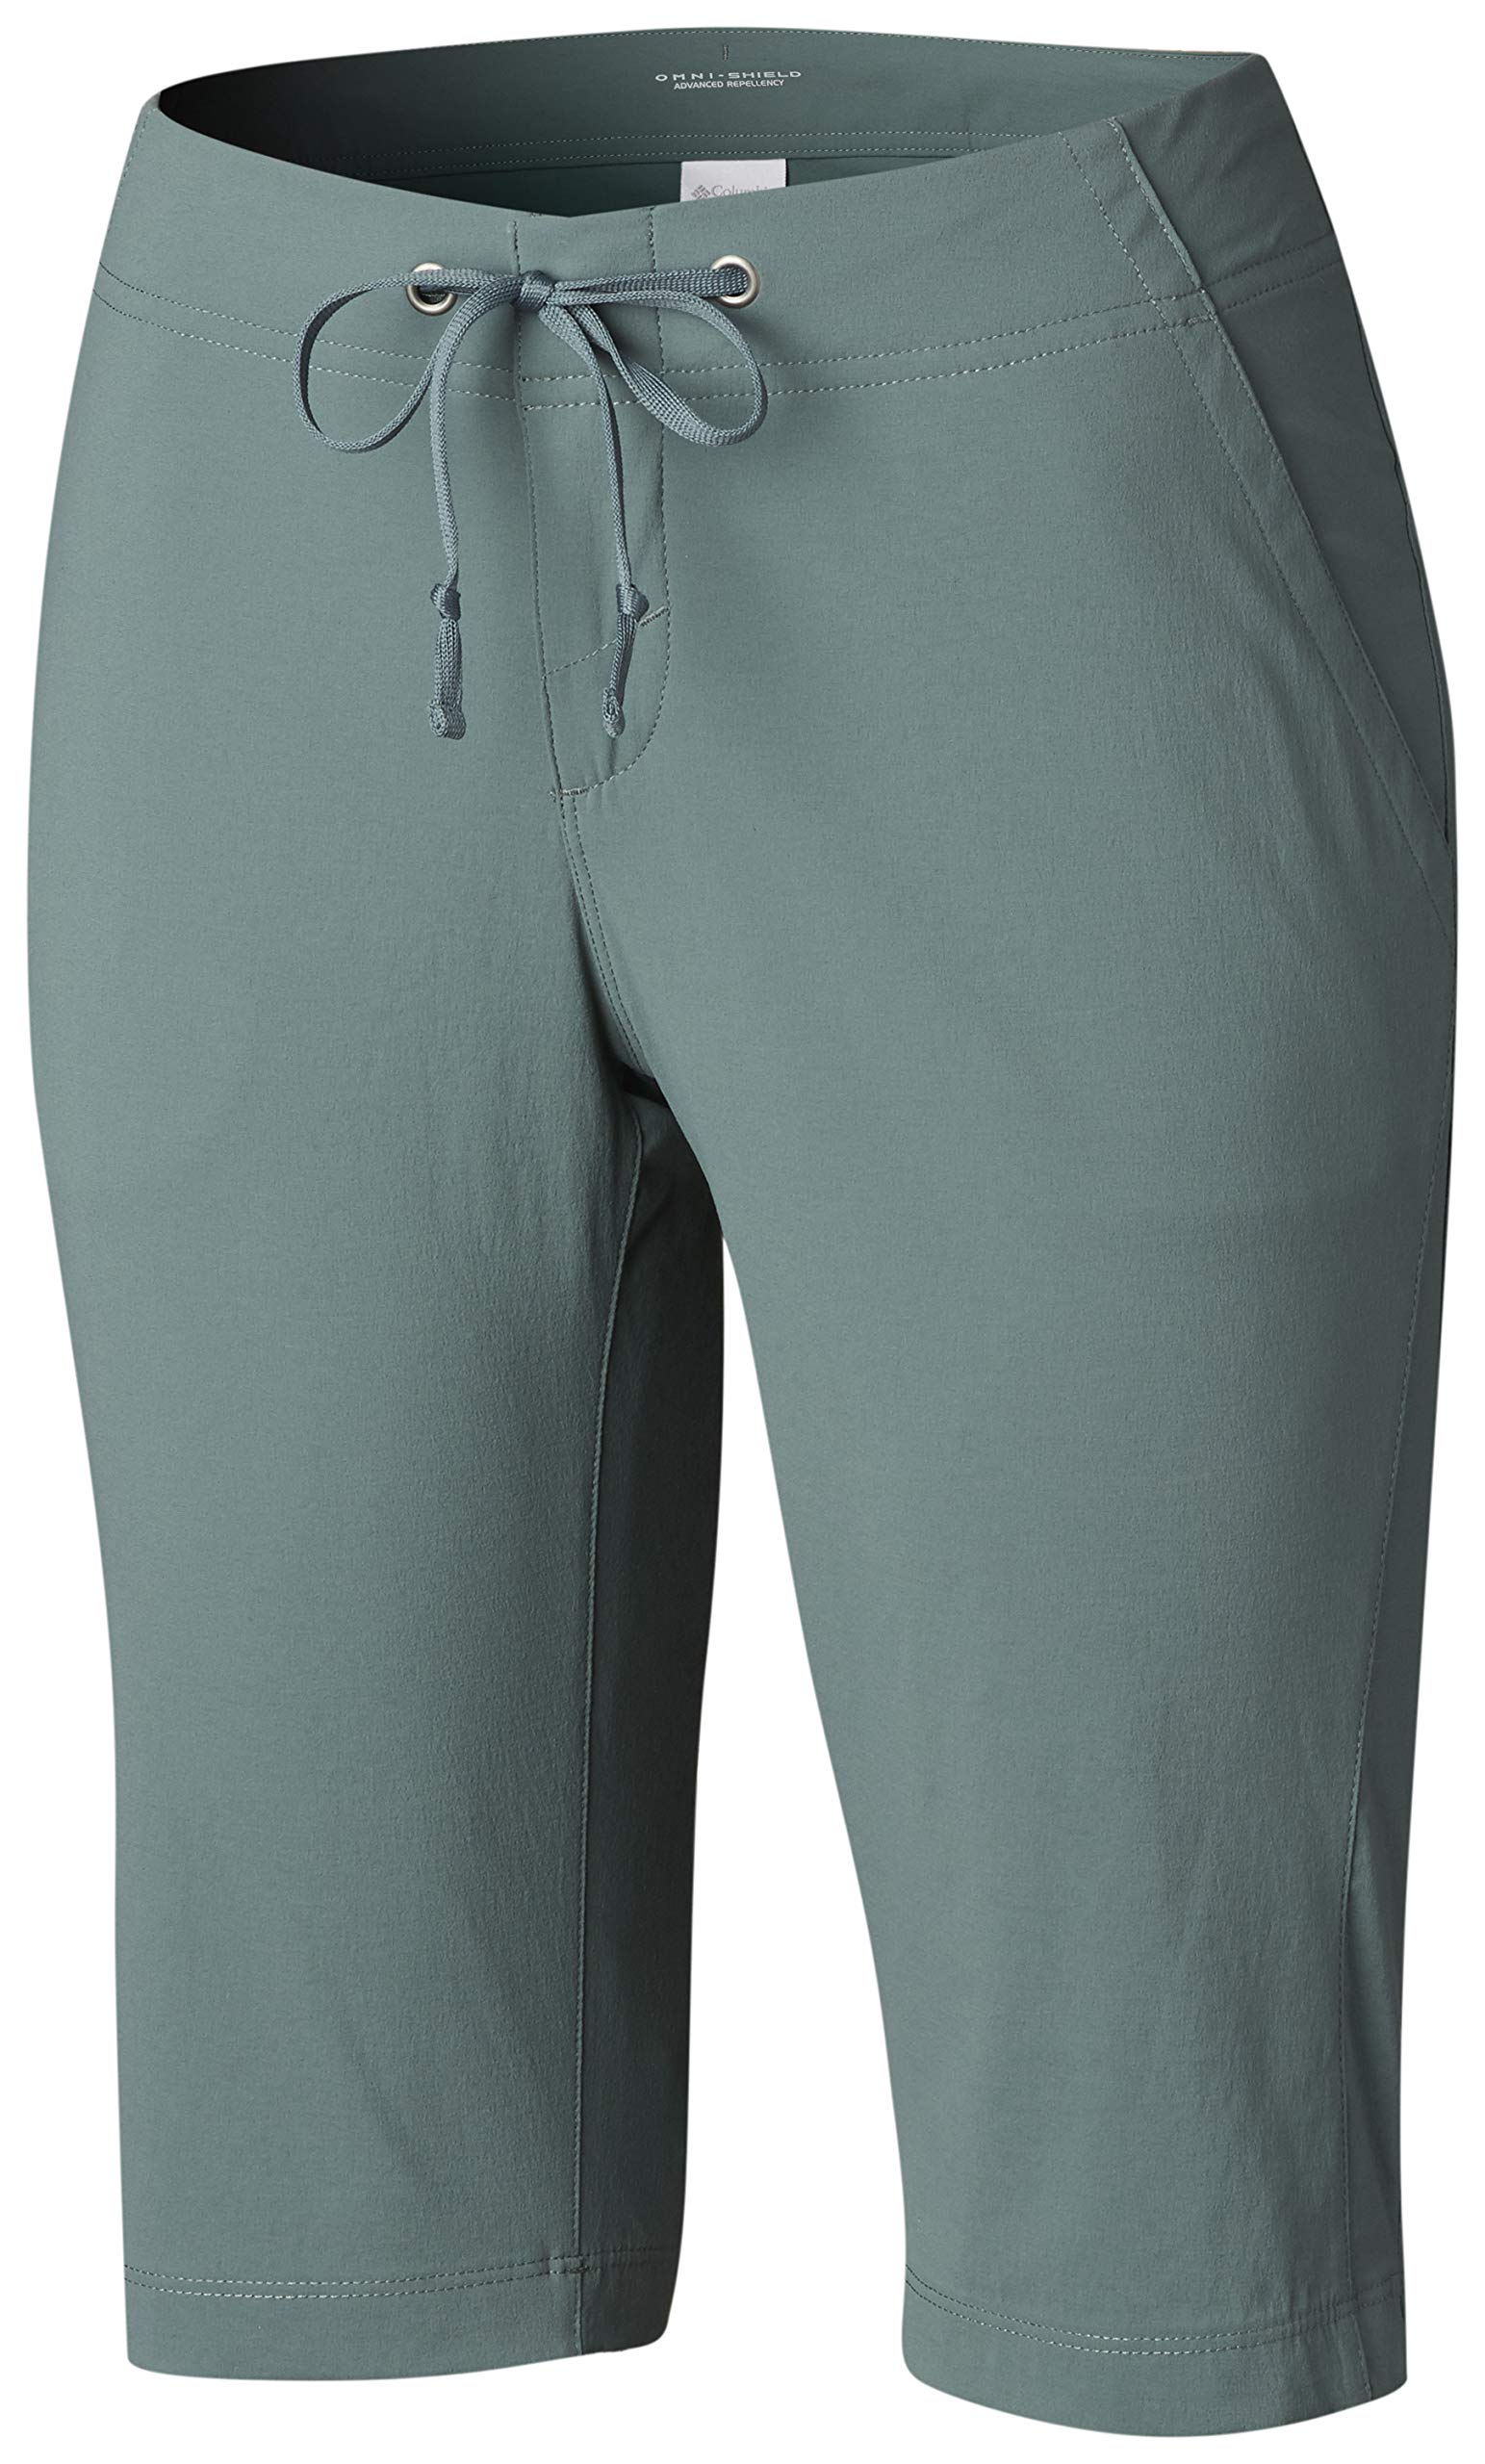 Columbia Women's Anytime Outdoor Long Short, Pond, 10 by Columbia